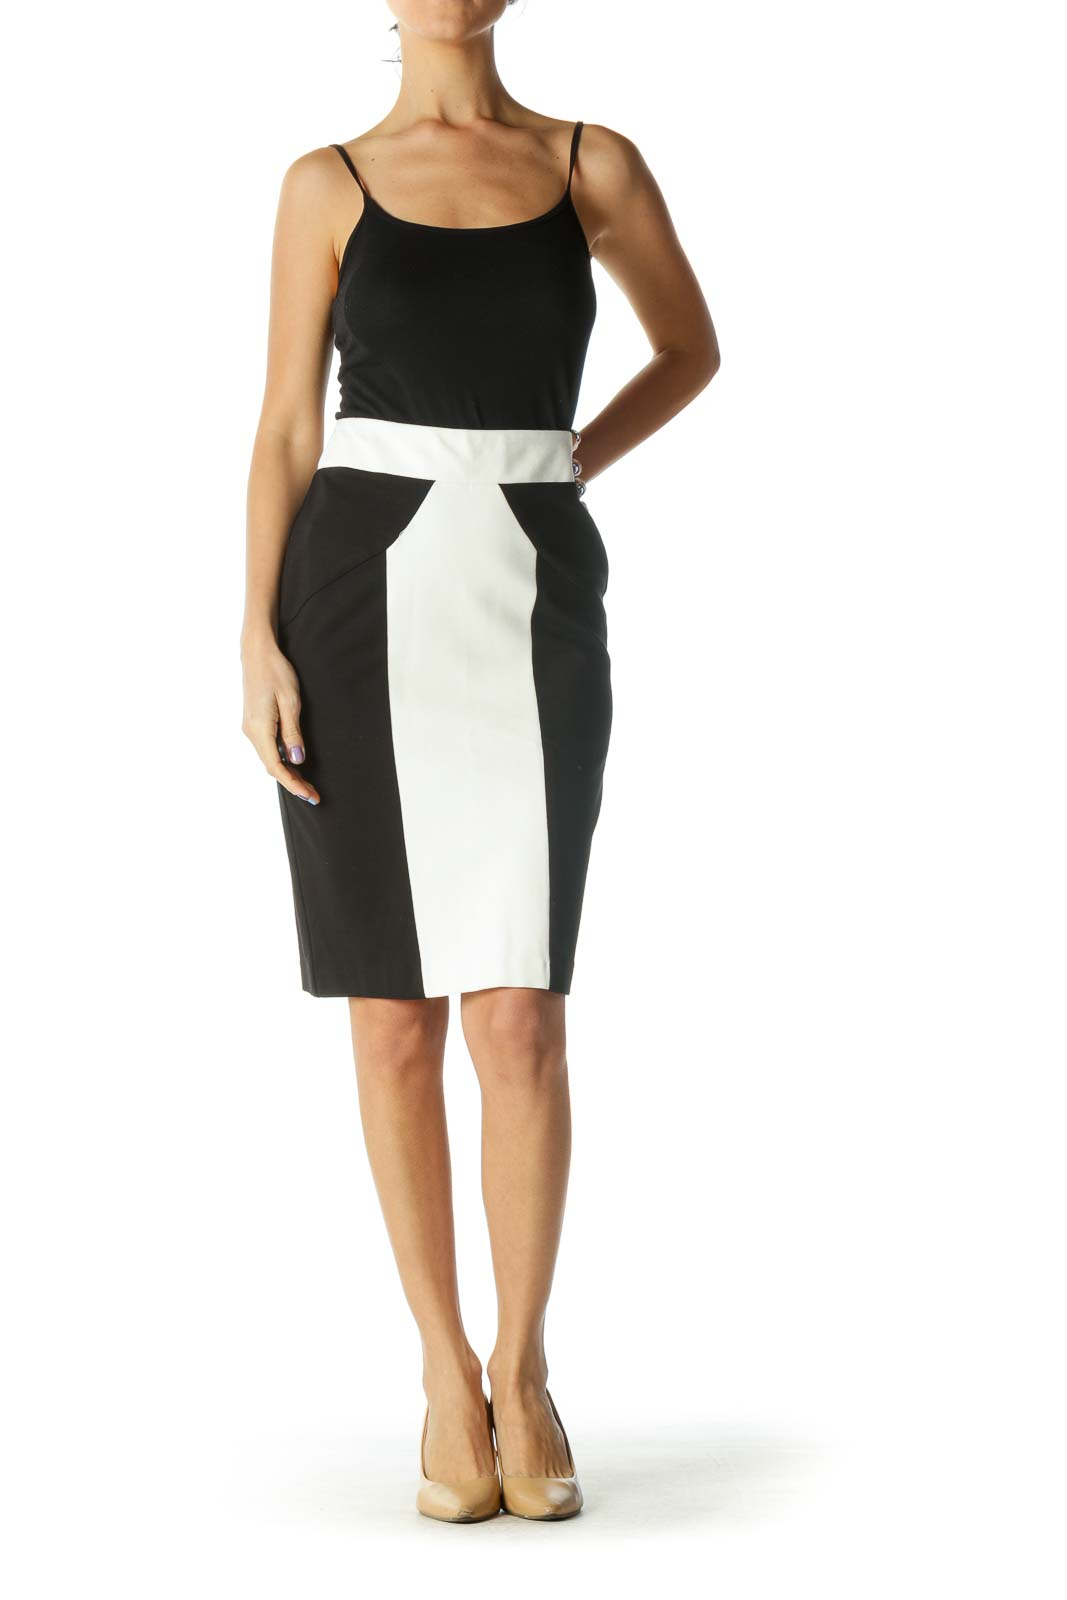 Black and White Color Block Pencil Skirt